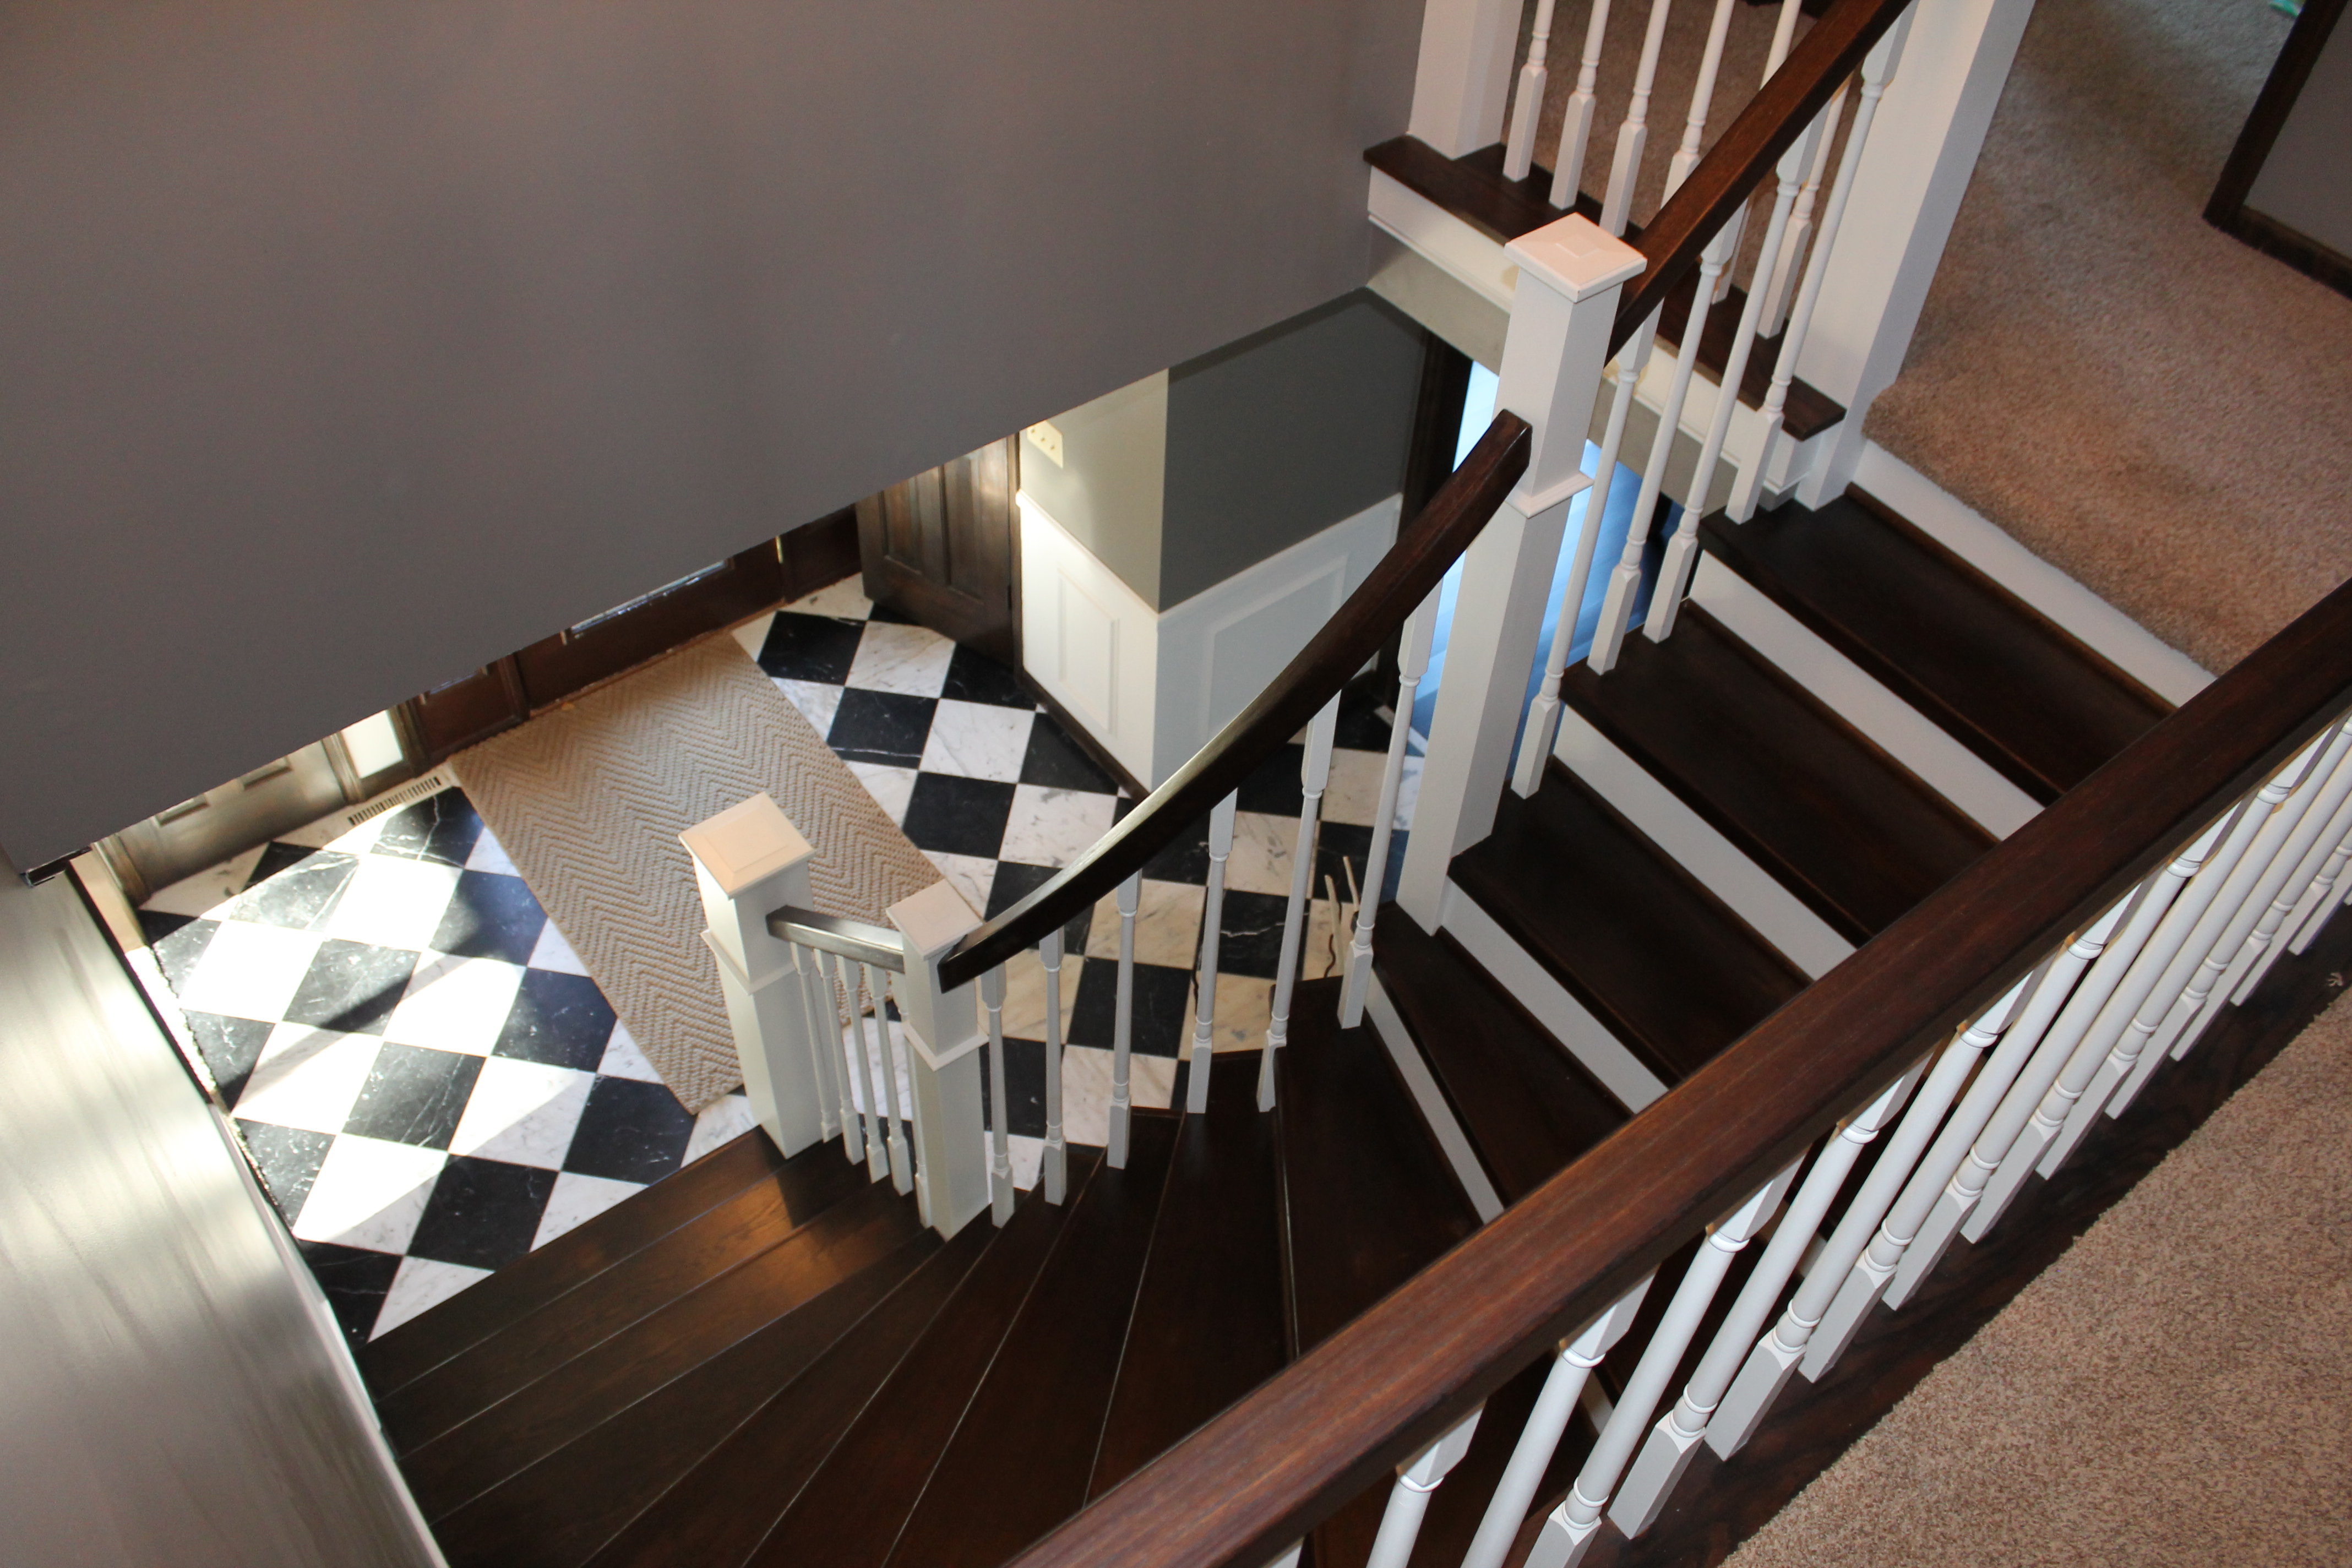 Remodel Curved Staircase From Carpet To Wood   Construction2Style Via  @Remodelaholic